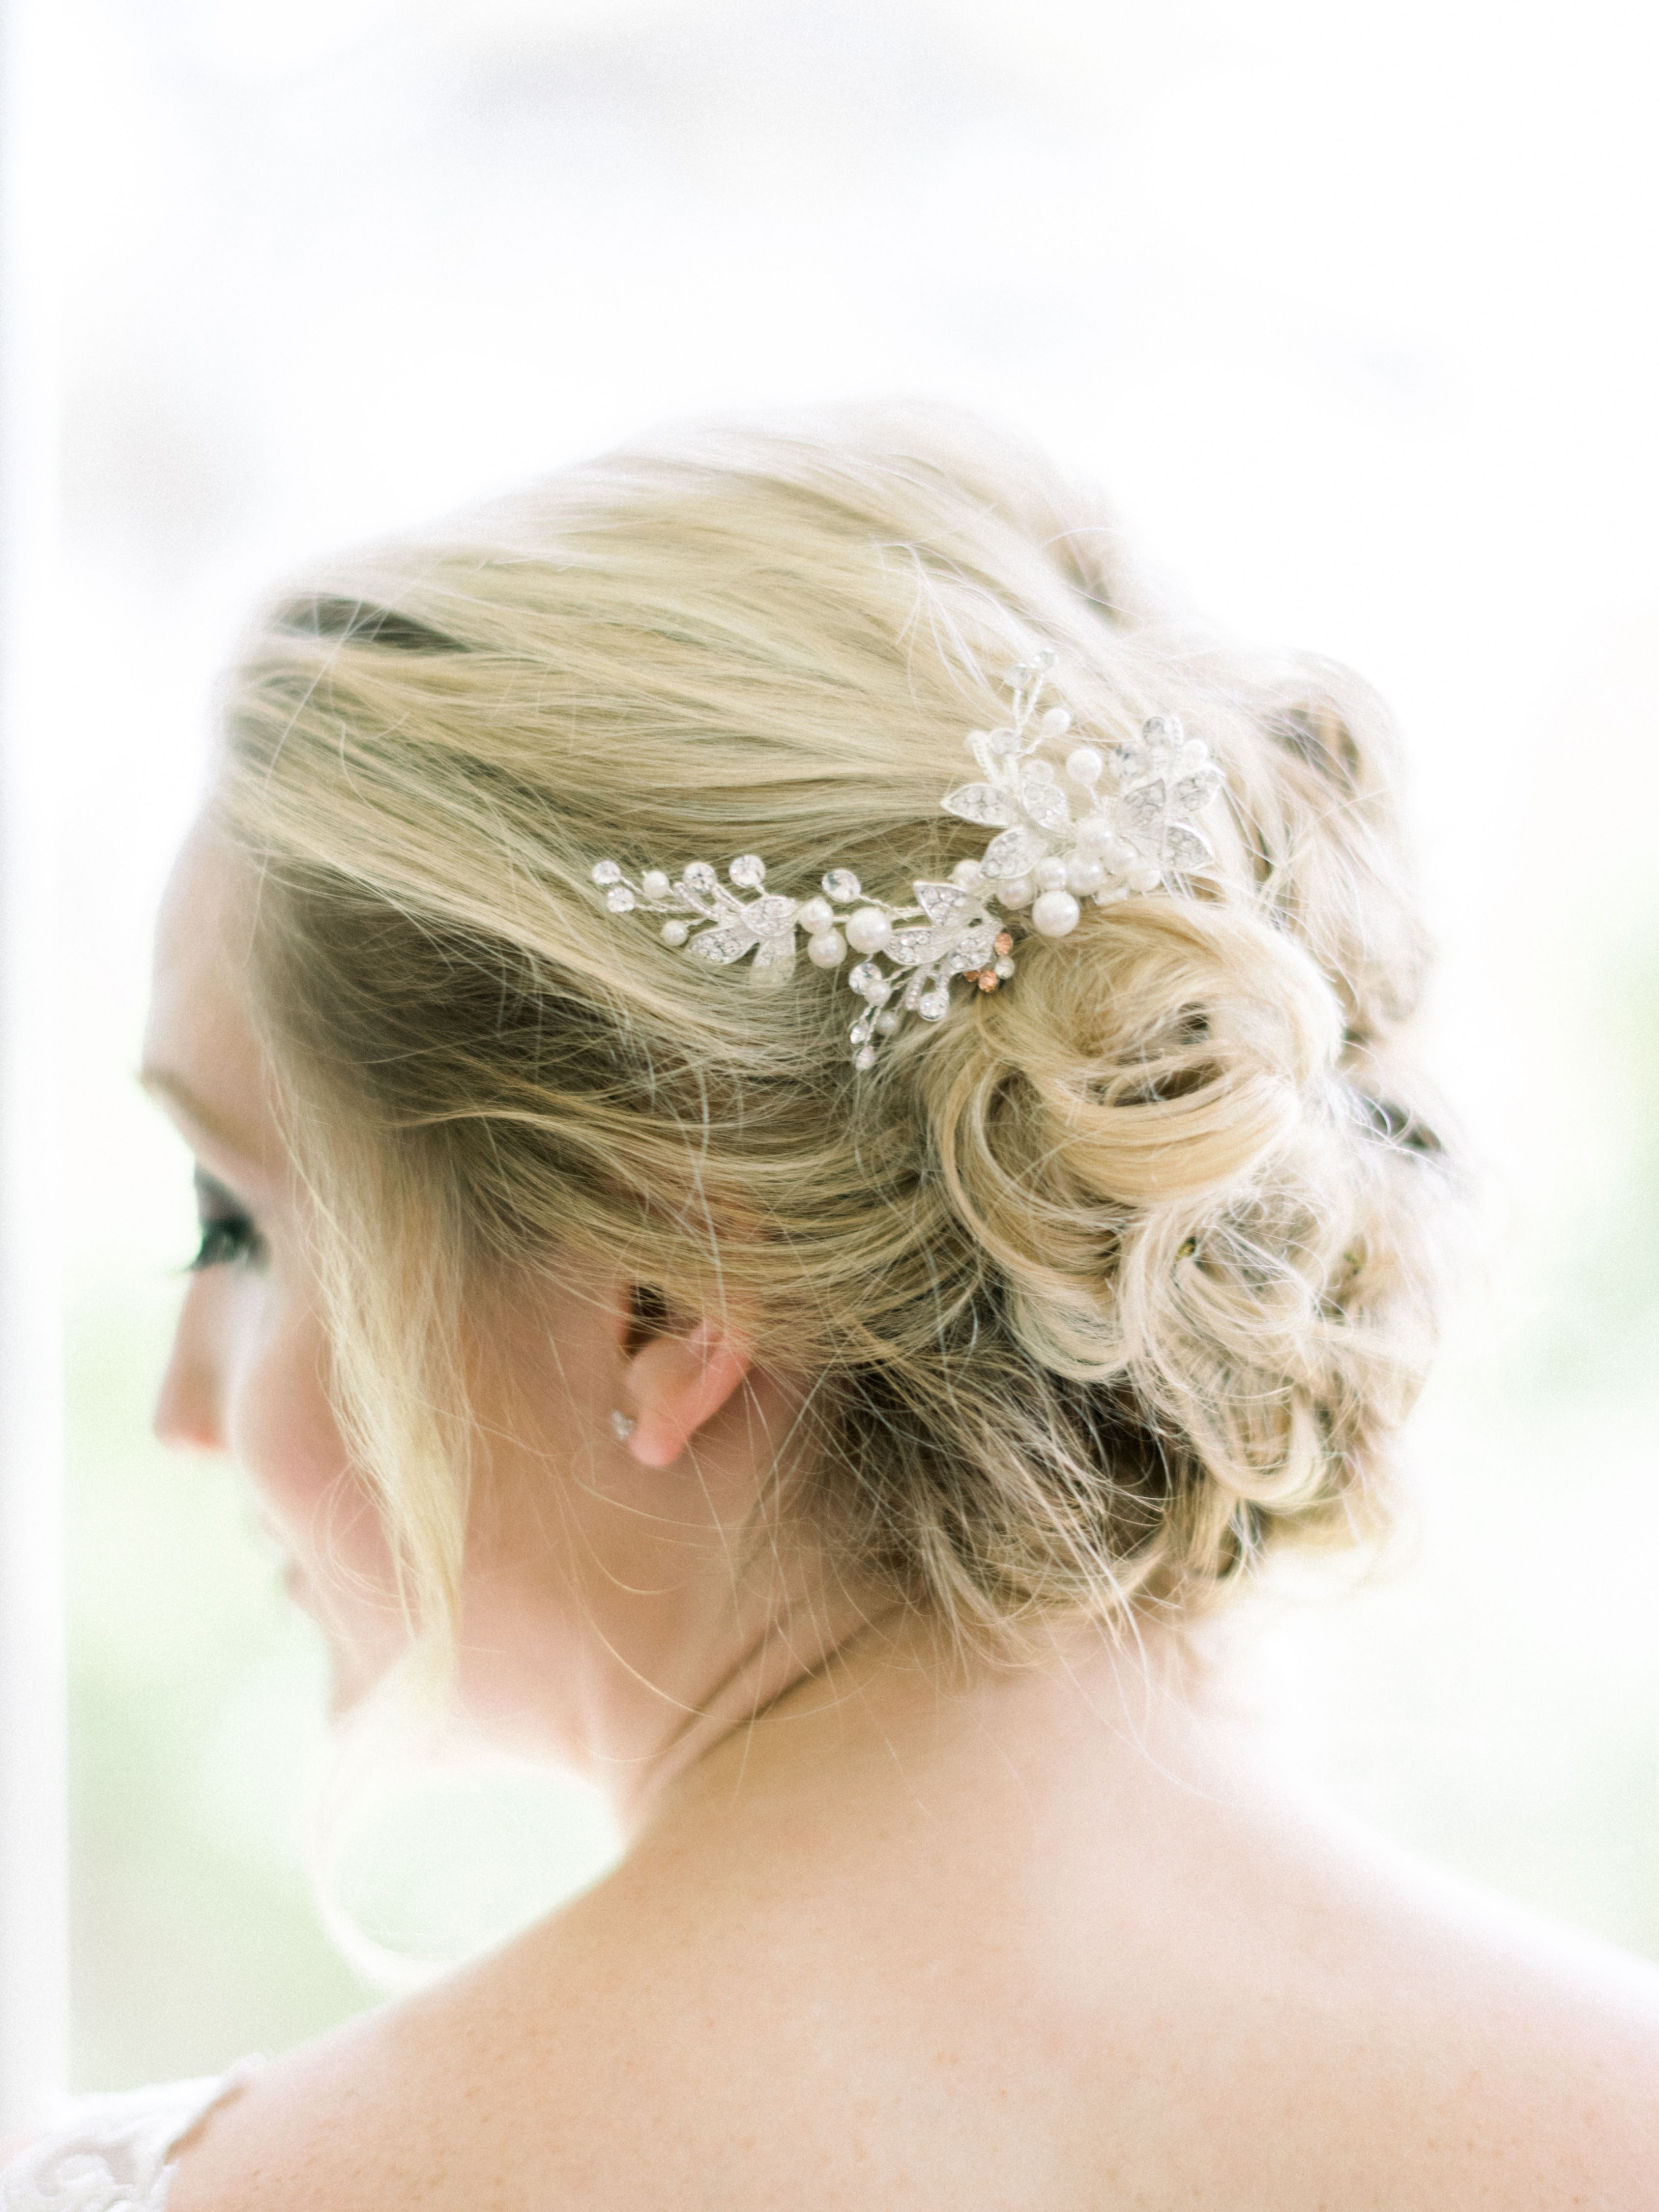 Most Recently Released Ethereal Updo Hairstyles With Headband Regarding Updo Inspo With A Beautiful Pearl Hair Comb Photo (View 3 of 20)